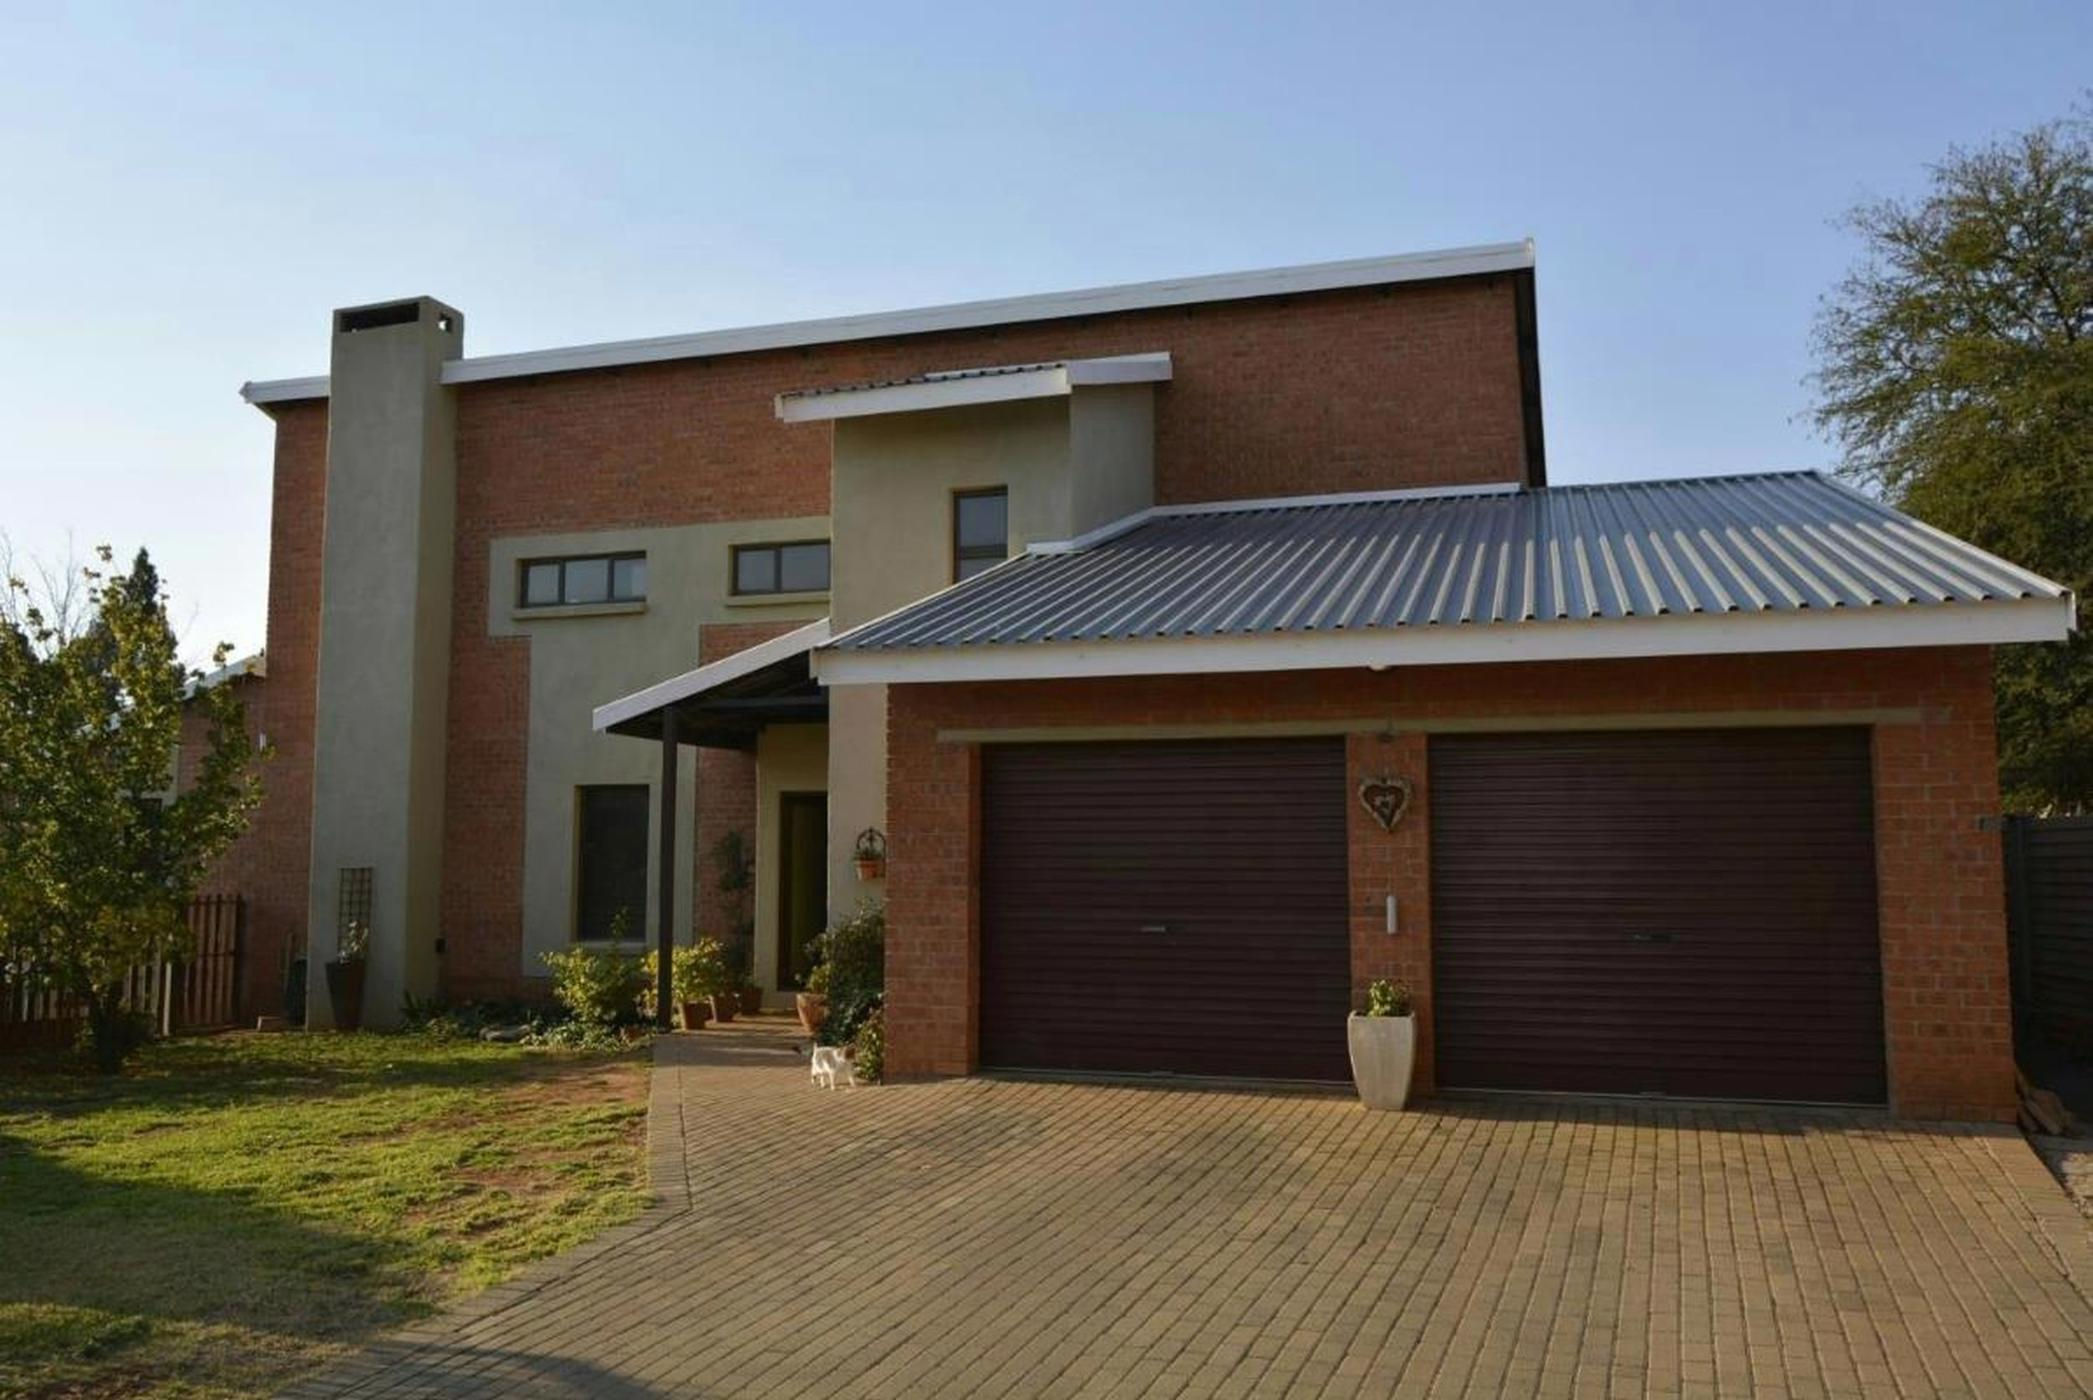 https://listing.pamgolding.co.za/images/properties/201903/1278497/H/1278497_H_1.jpg